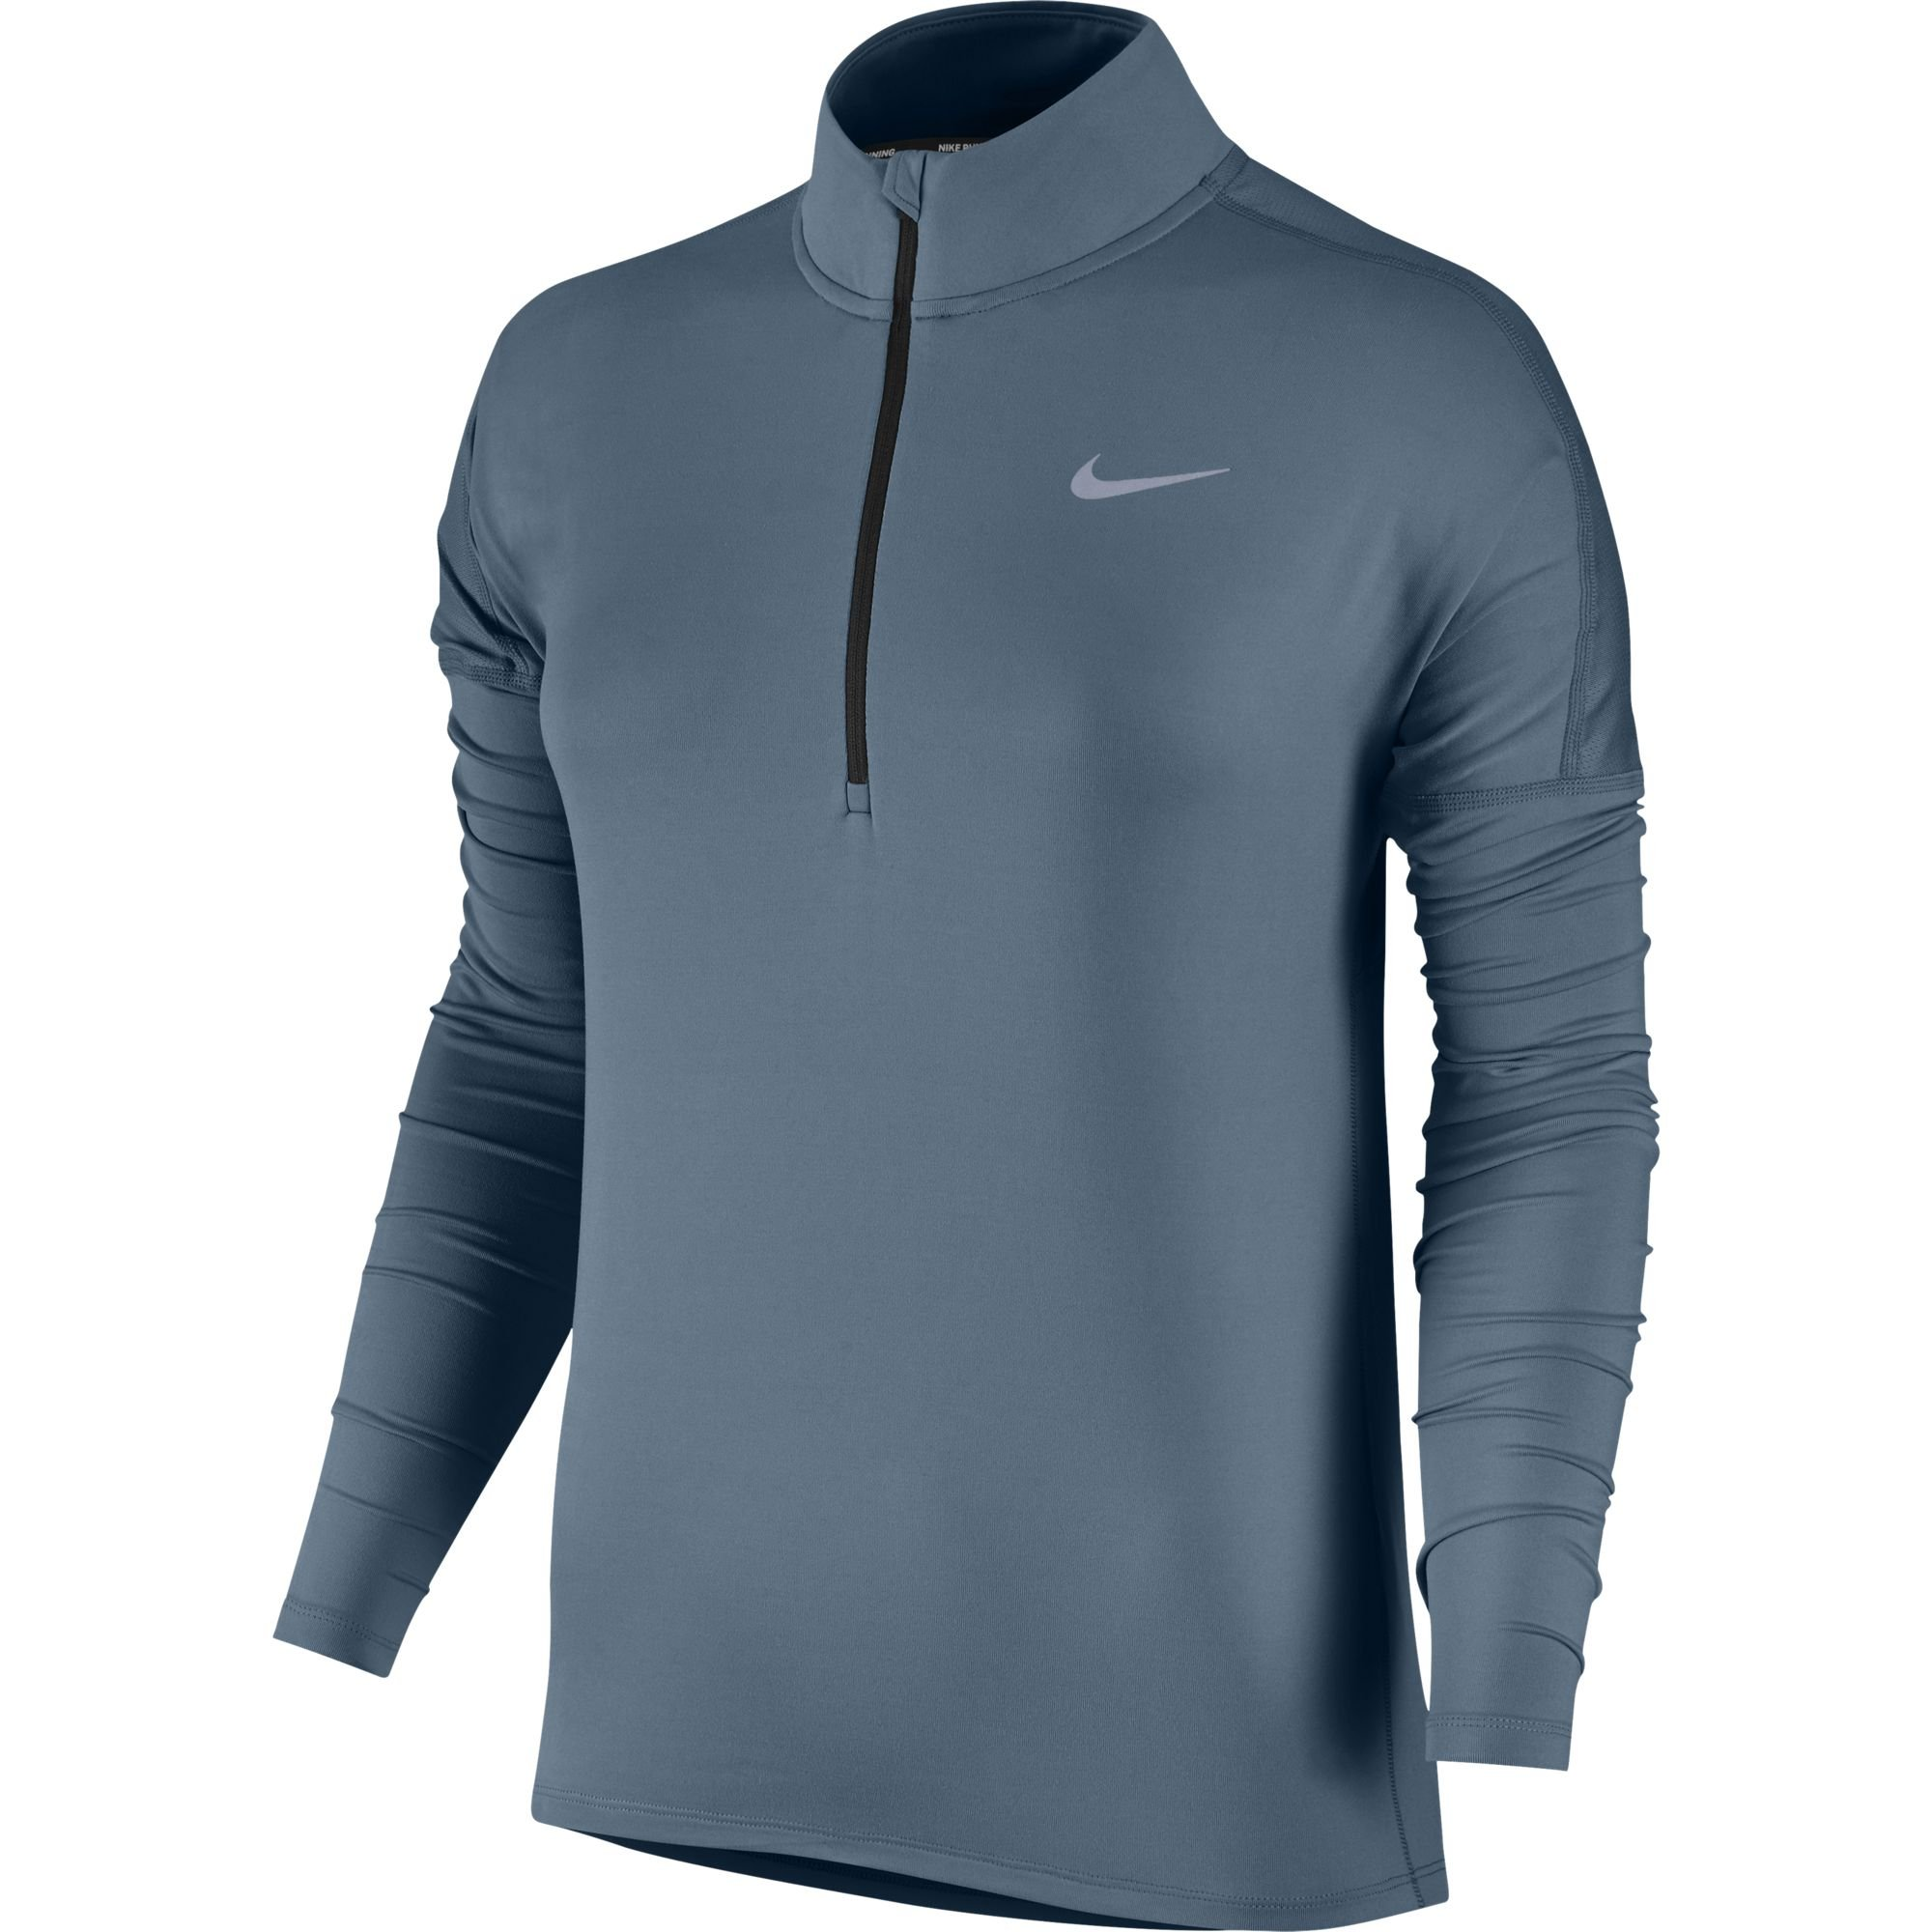 Nike Women's Dry Element Running Top Armory Blue/Heather Size Medium by Nike (Image #1)